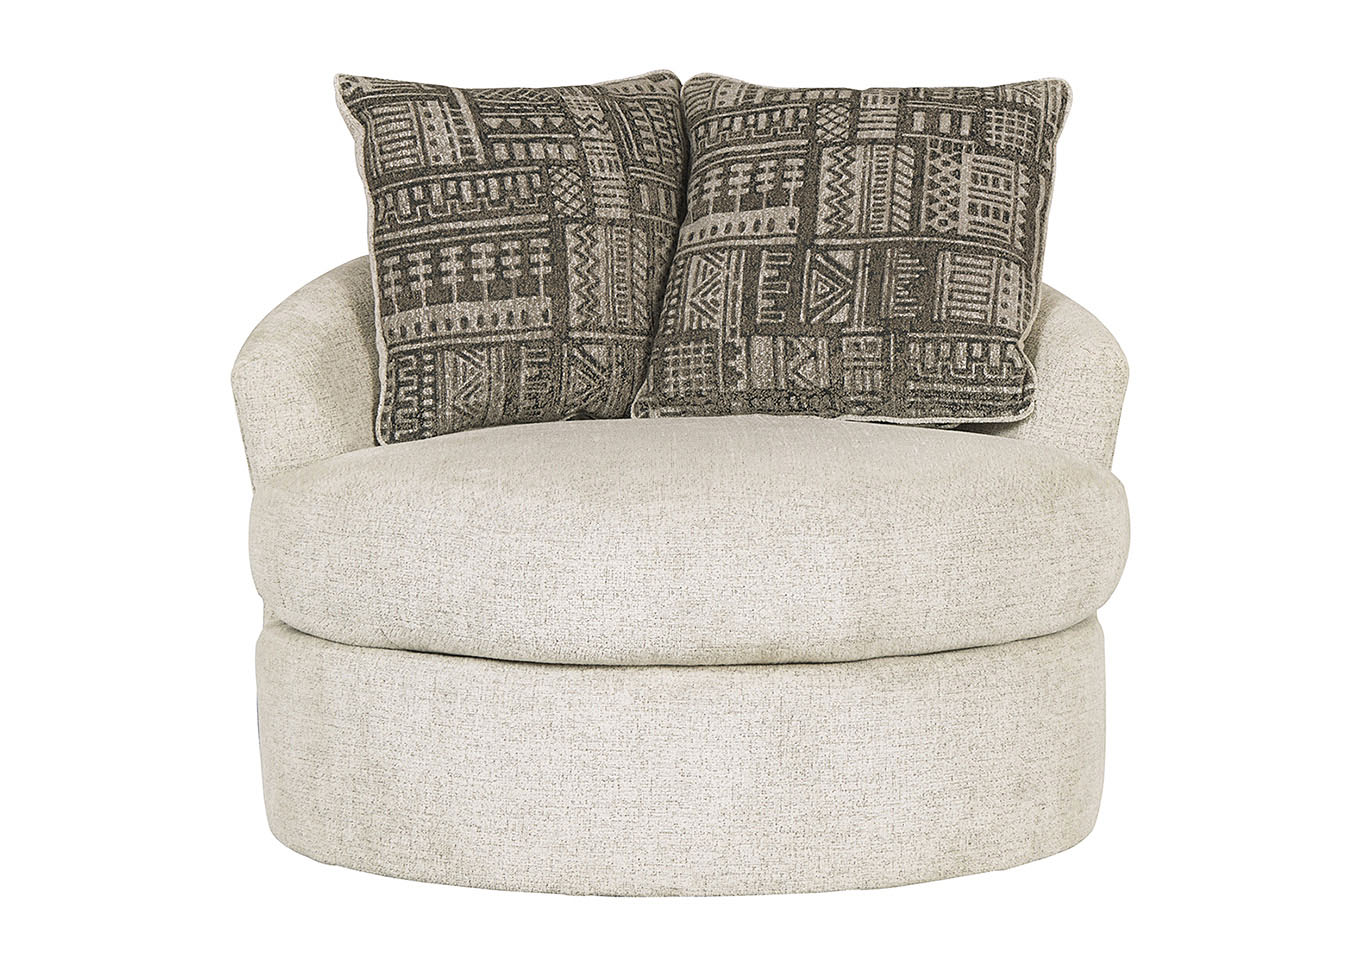 Soletren Stone Swivel Accent Chair w/2 Pillows,Signature Design By Ashley